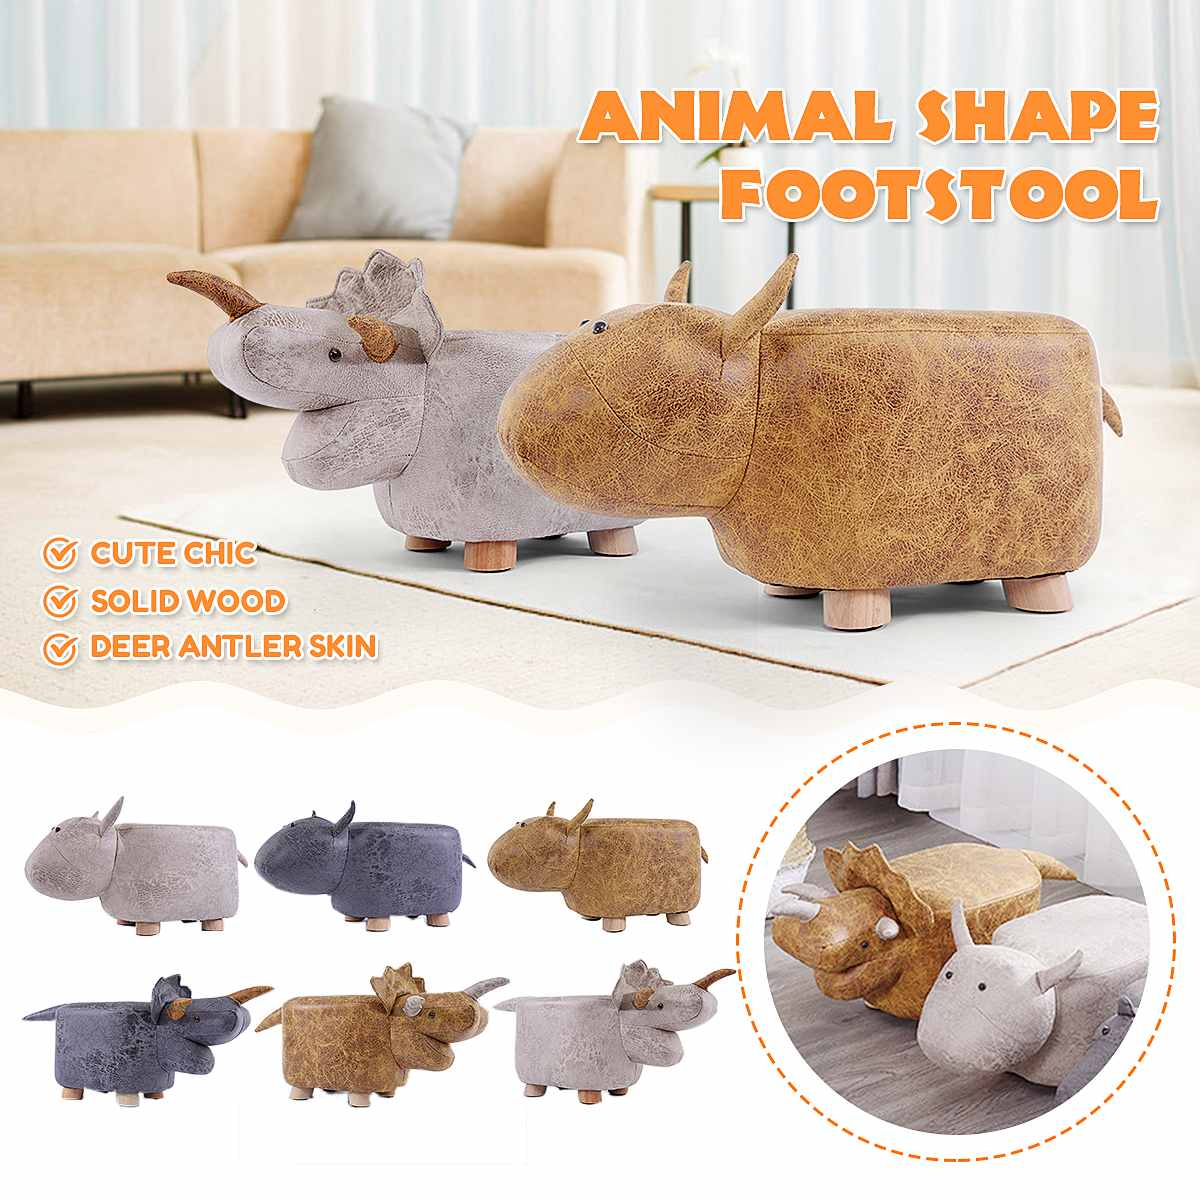 NEW Animal Shape Footstools Sofa Padded Cushion Pouffe Stools Rest Seat Home Kids Bedroom Furniture Decor 56 X 25 X 25 Cm